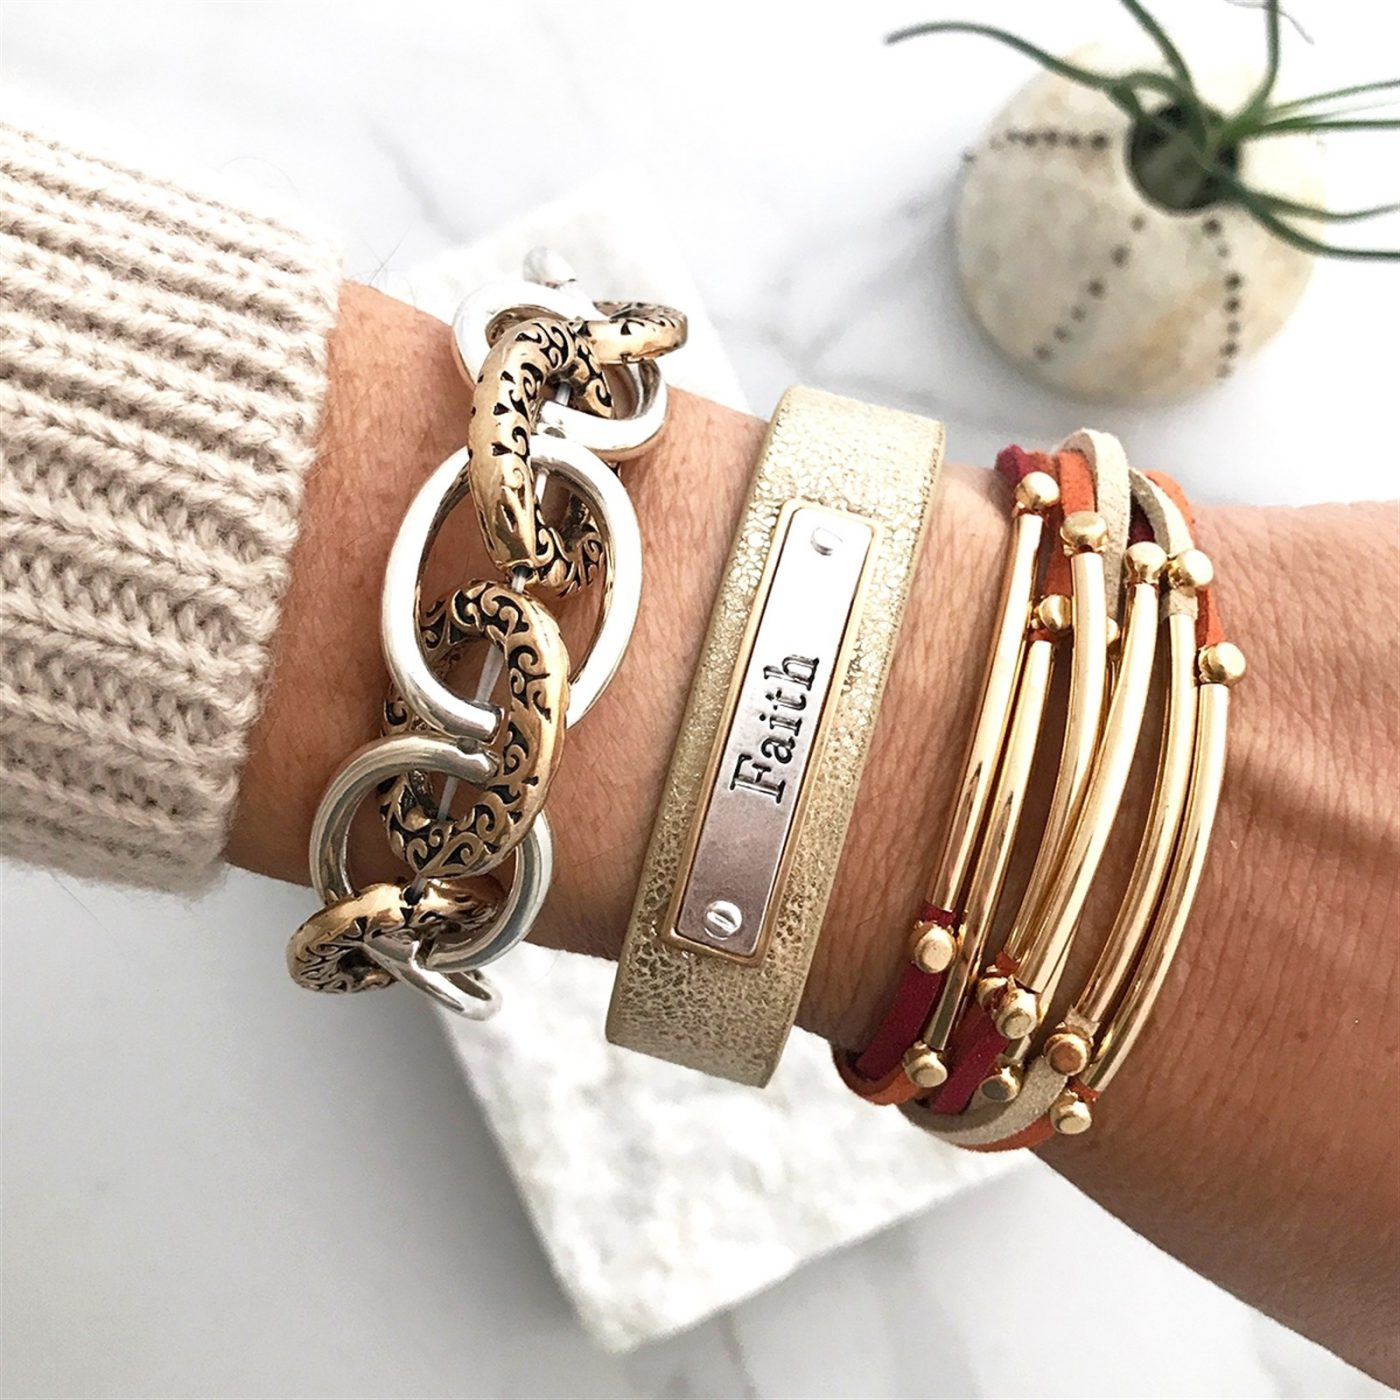 Was $22.99 - Now $12.99 - Fall Bracelet Collection | Free Shipping (10/15 to 10/17)